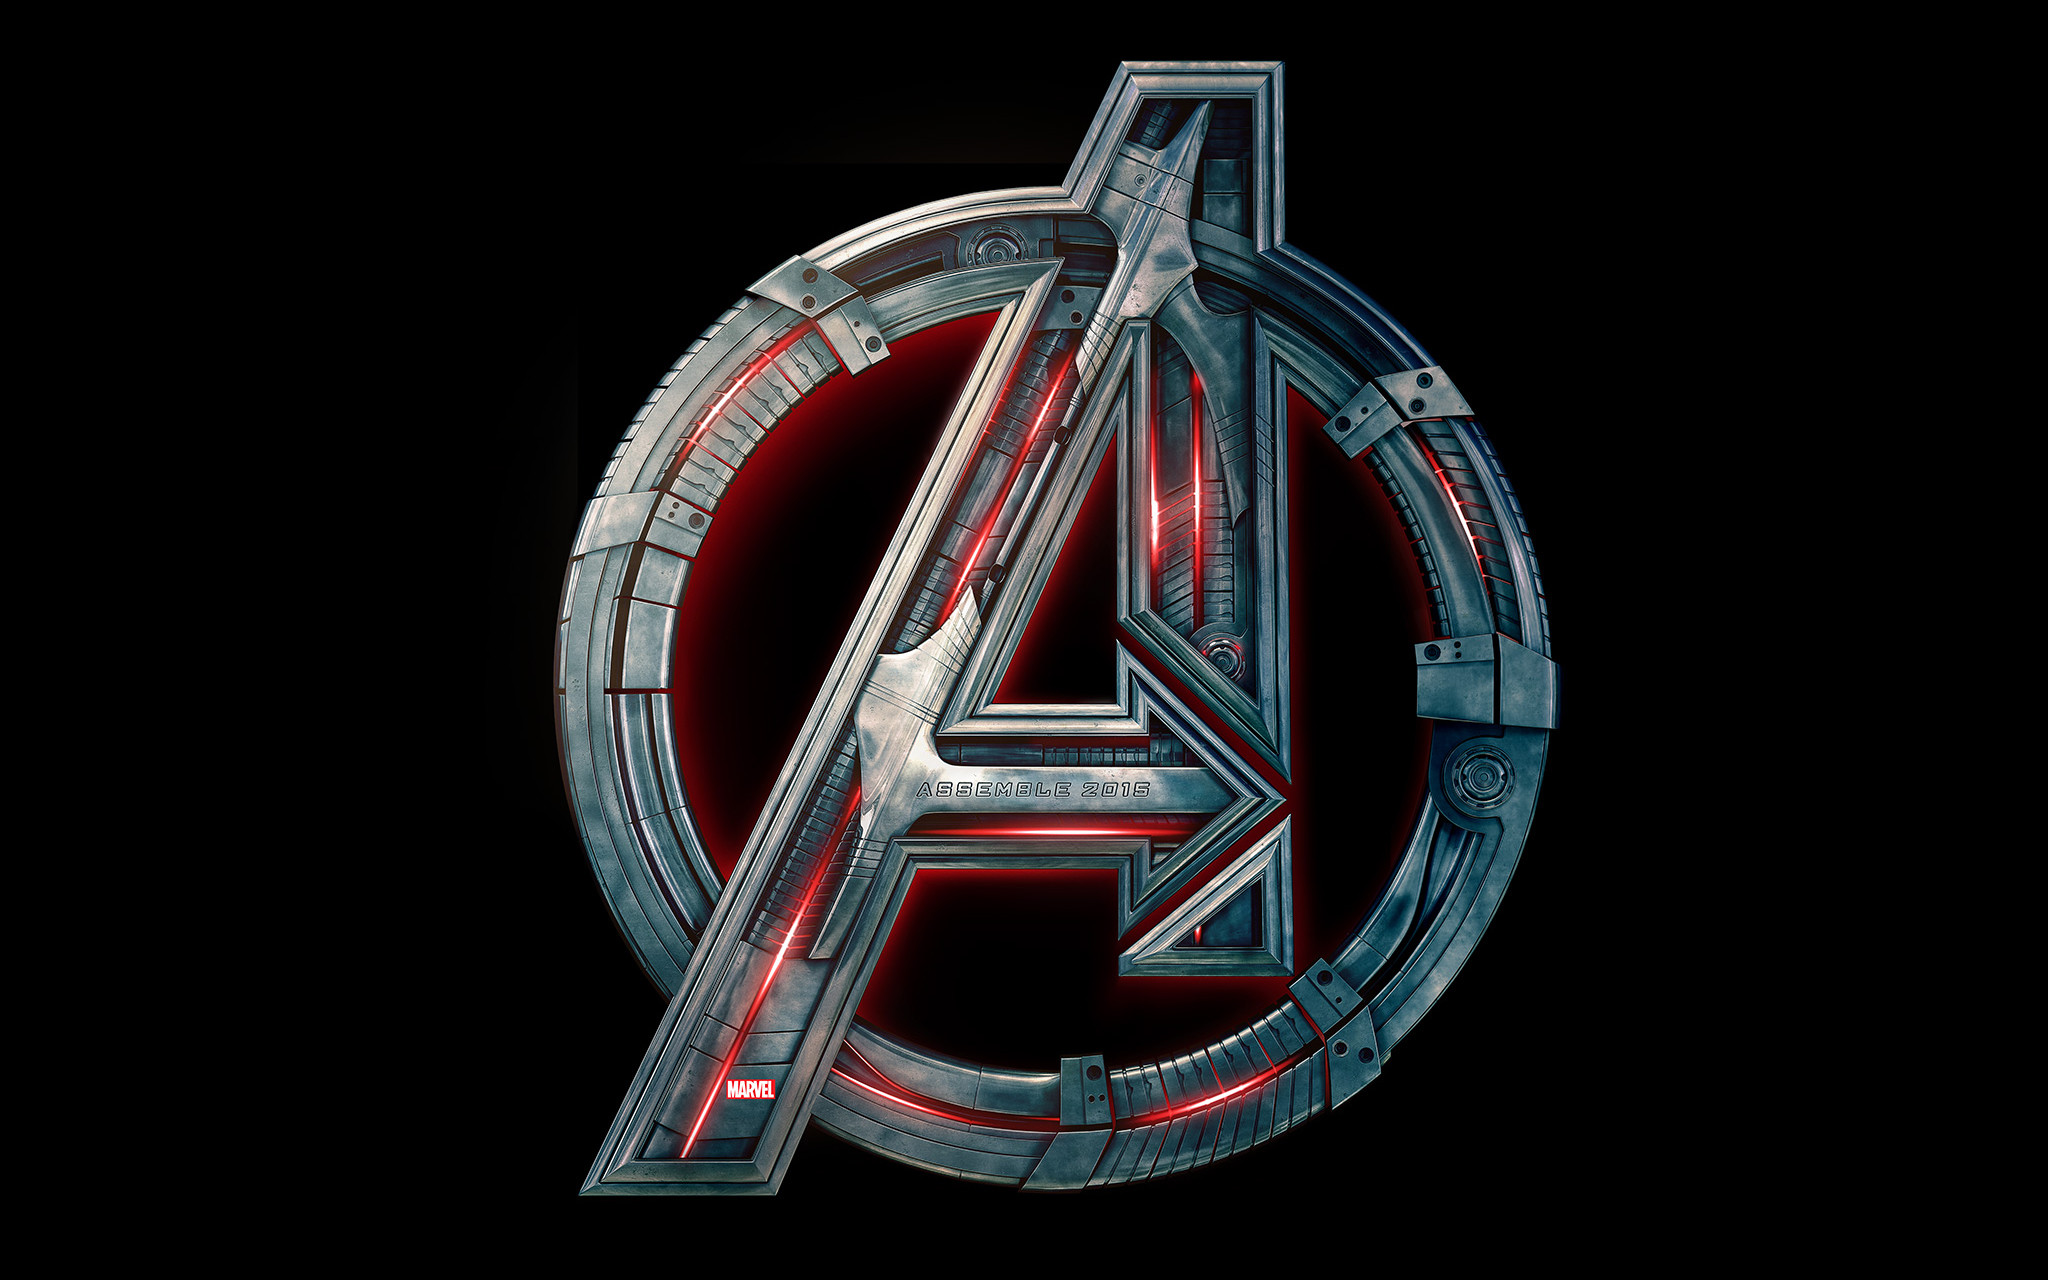 2048x1280 Movie - Avengers: Age of Ultron Avengers Wallpaper